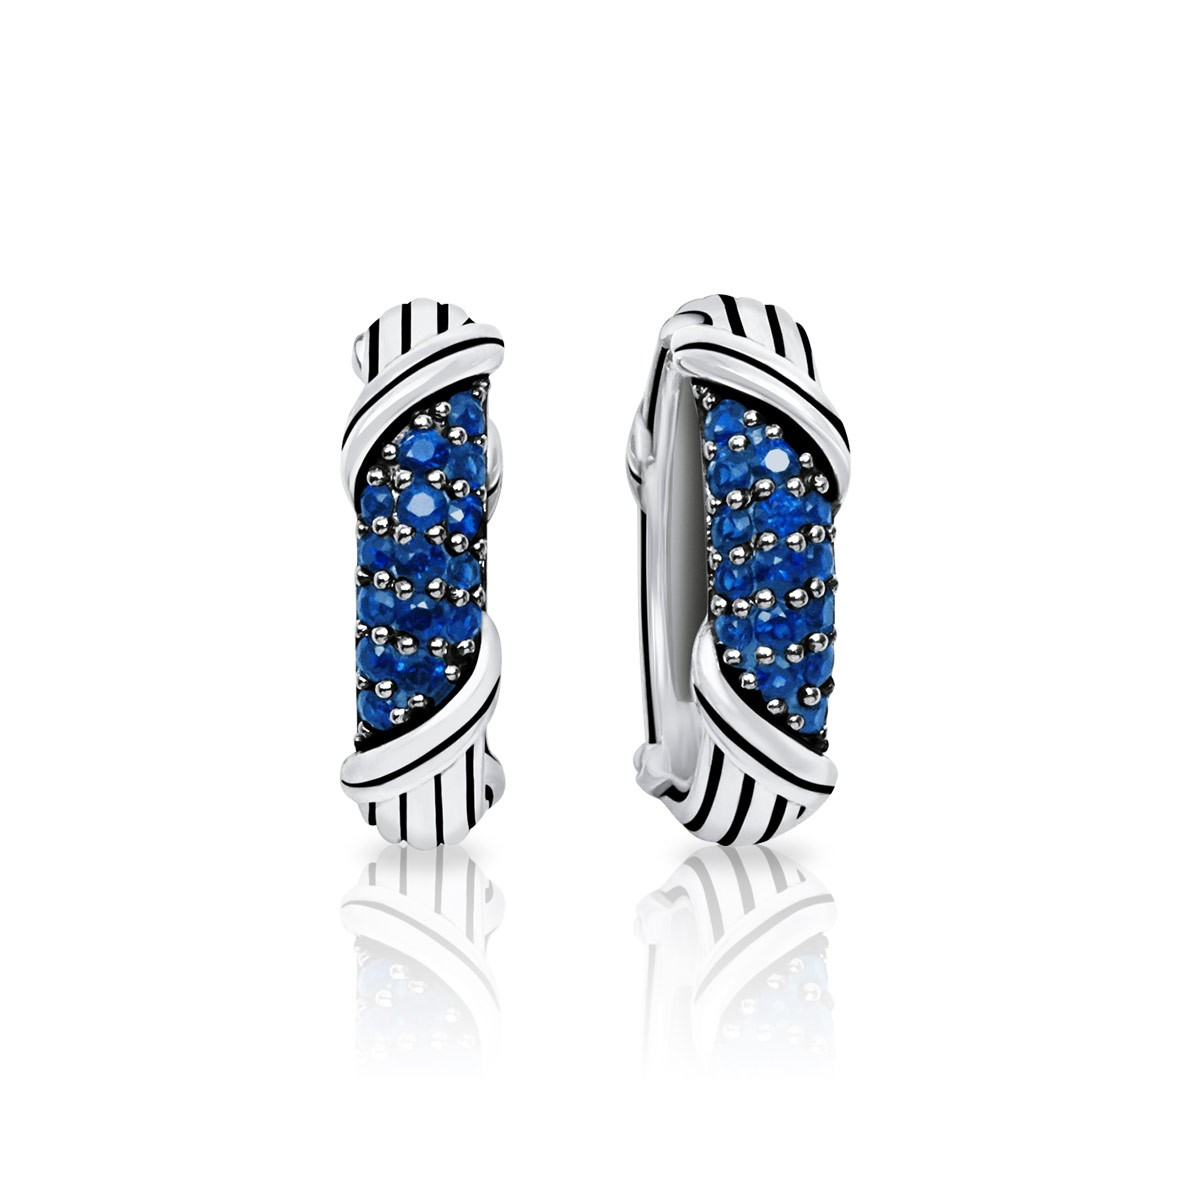 Signature Classic Pave Oval Hoop Earrings with blue sapphires in sterling silver